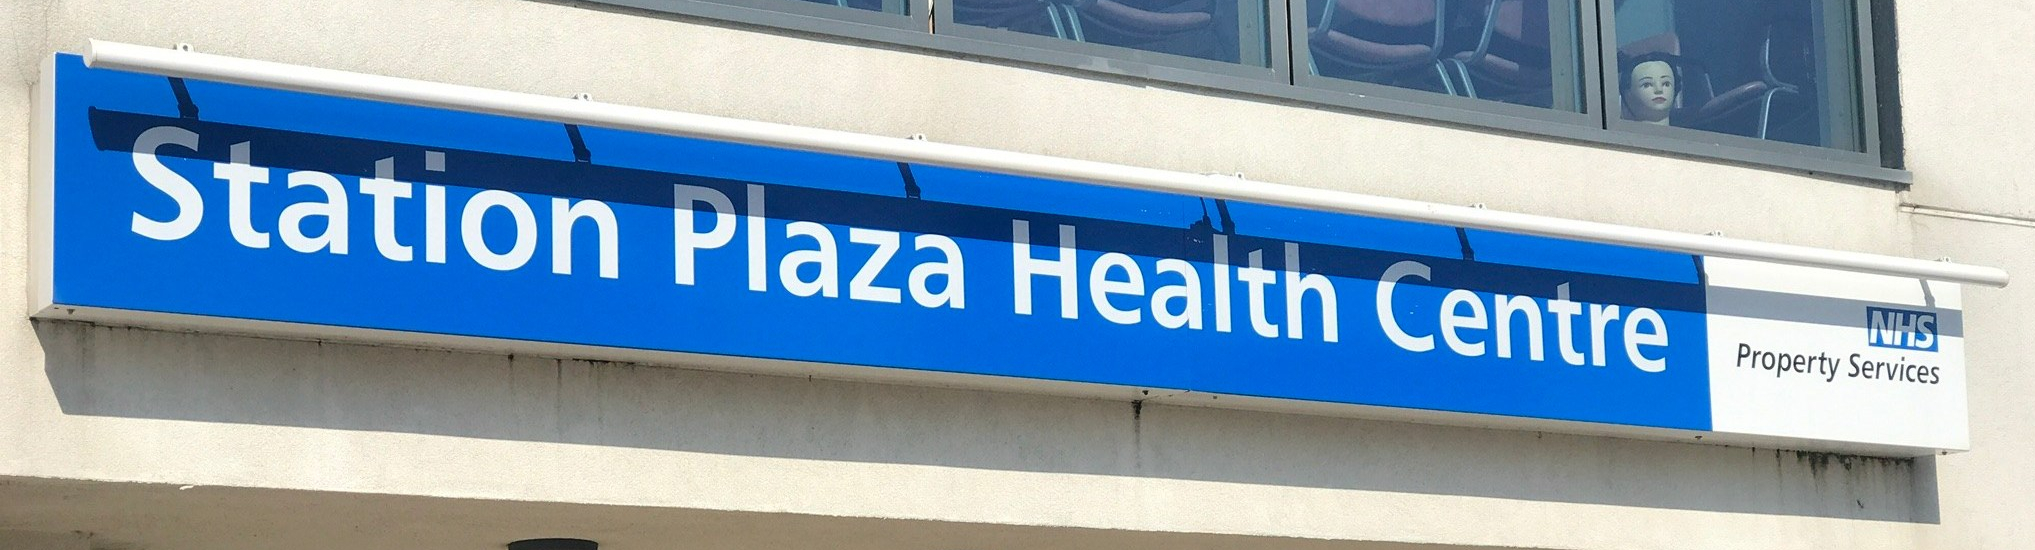 Walk-in Centre signage